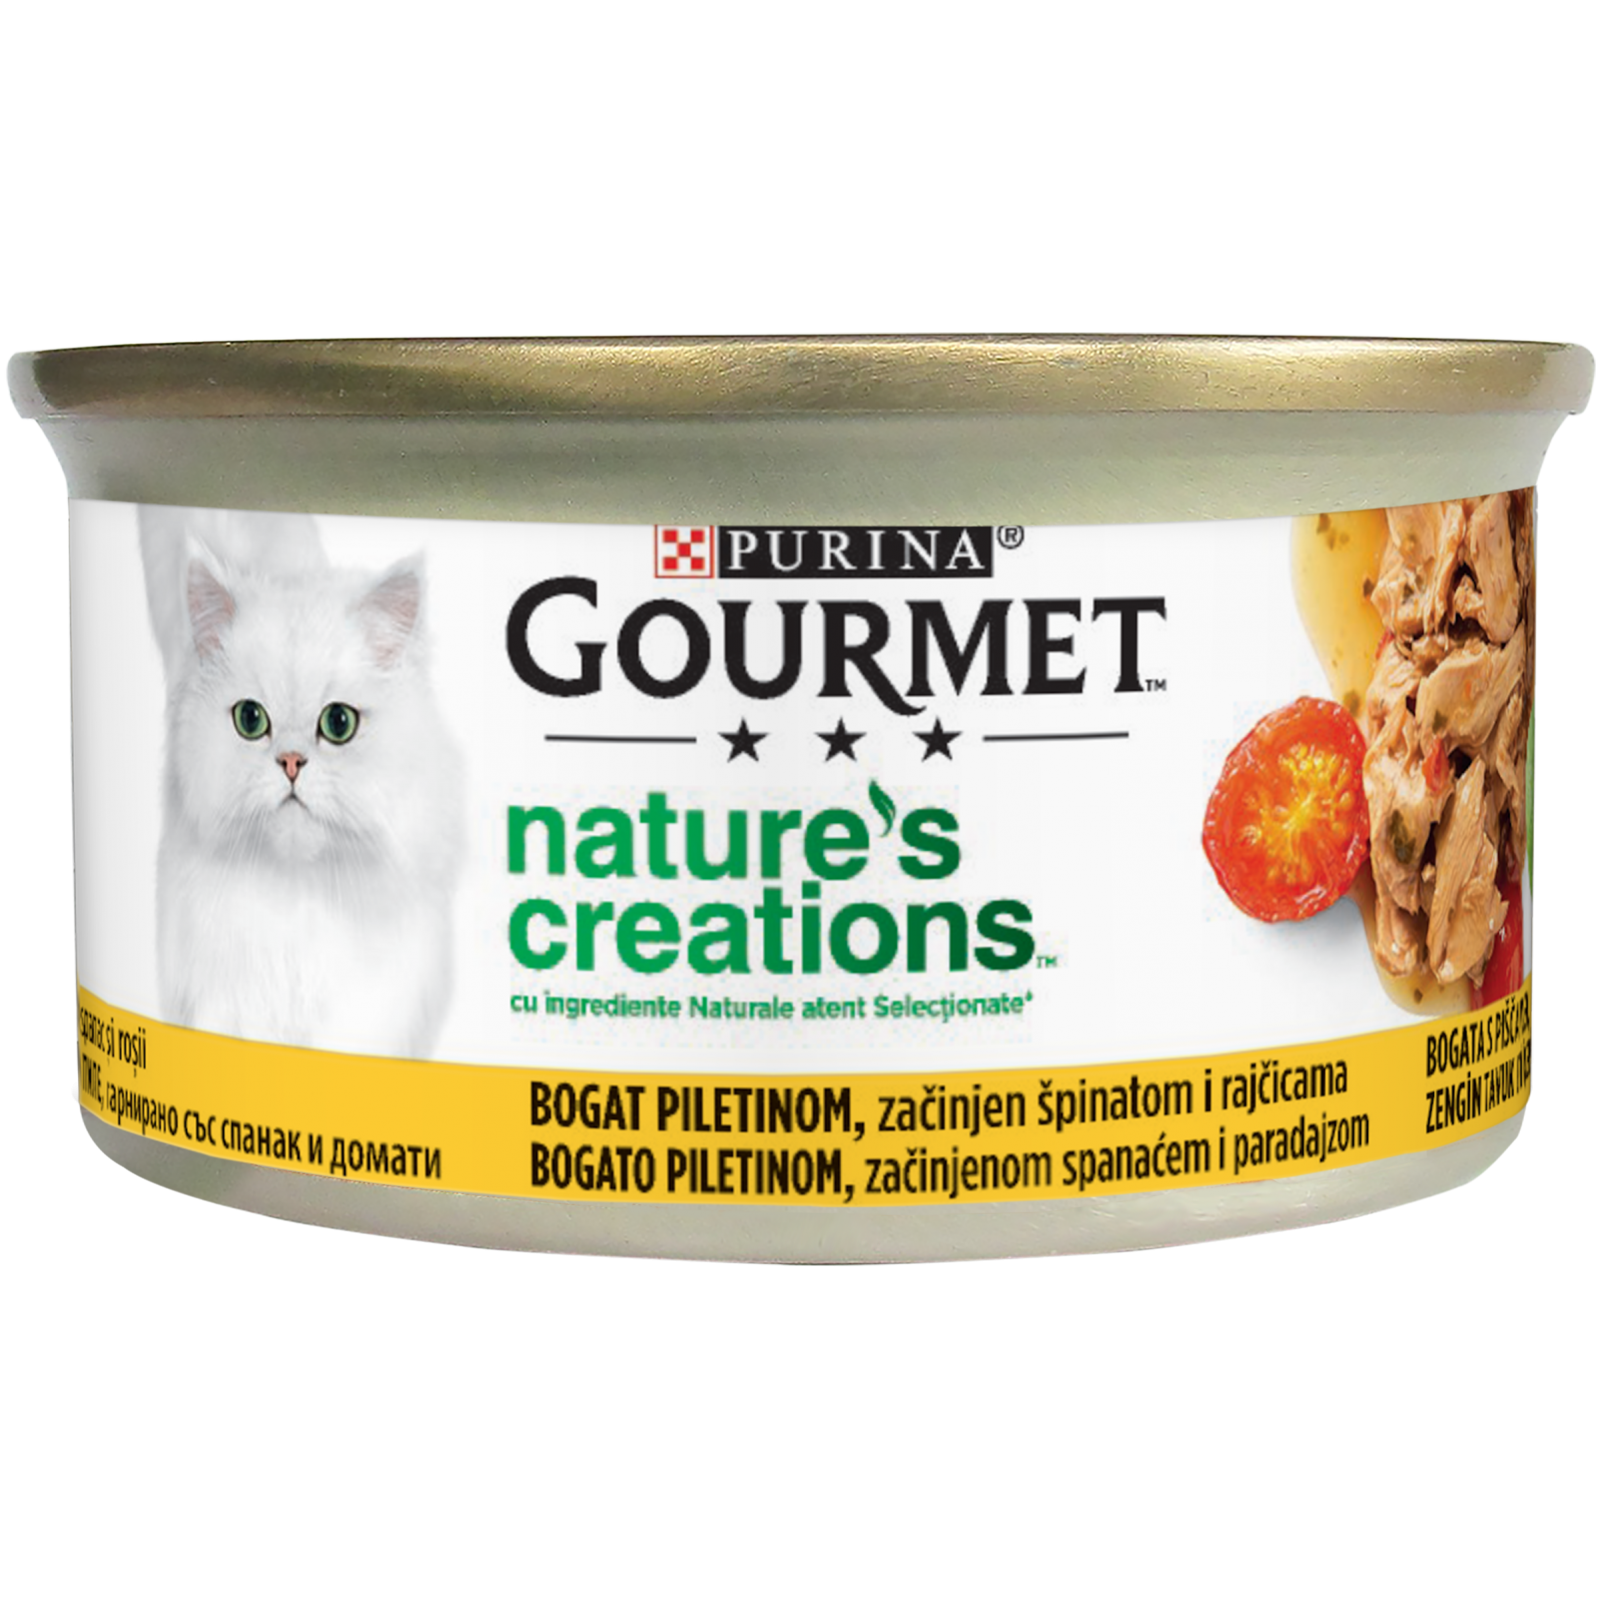 Gourmet Nature's Creations, File Pui si Tomate, 85 g imagine